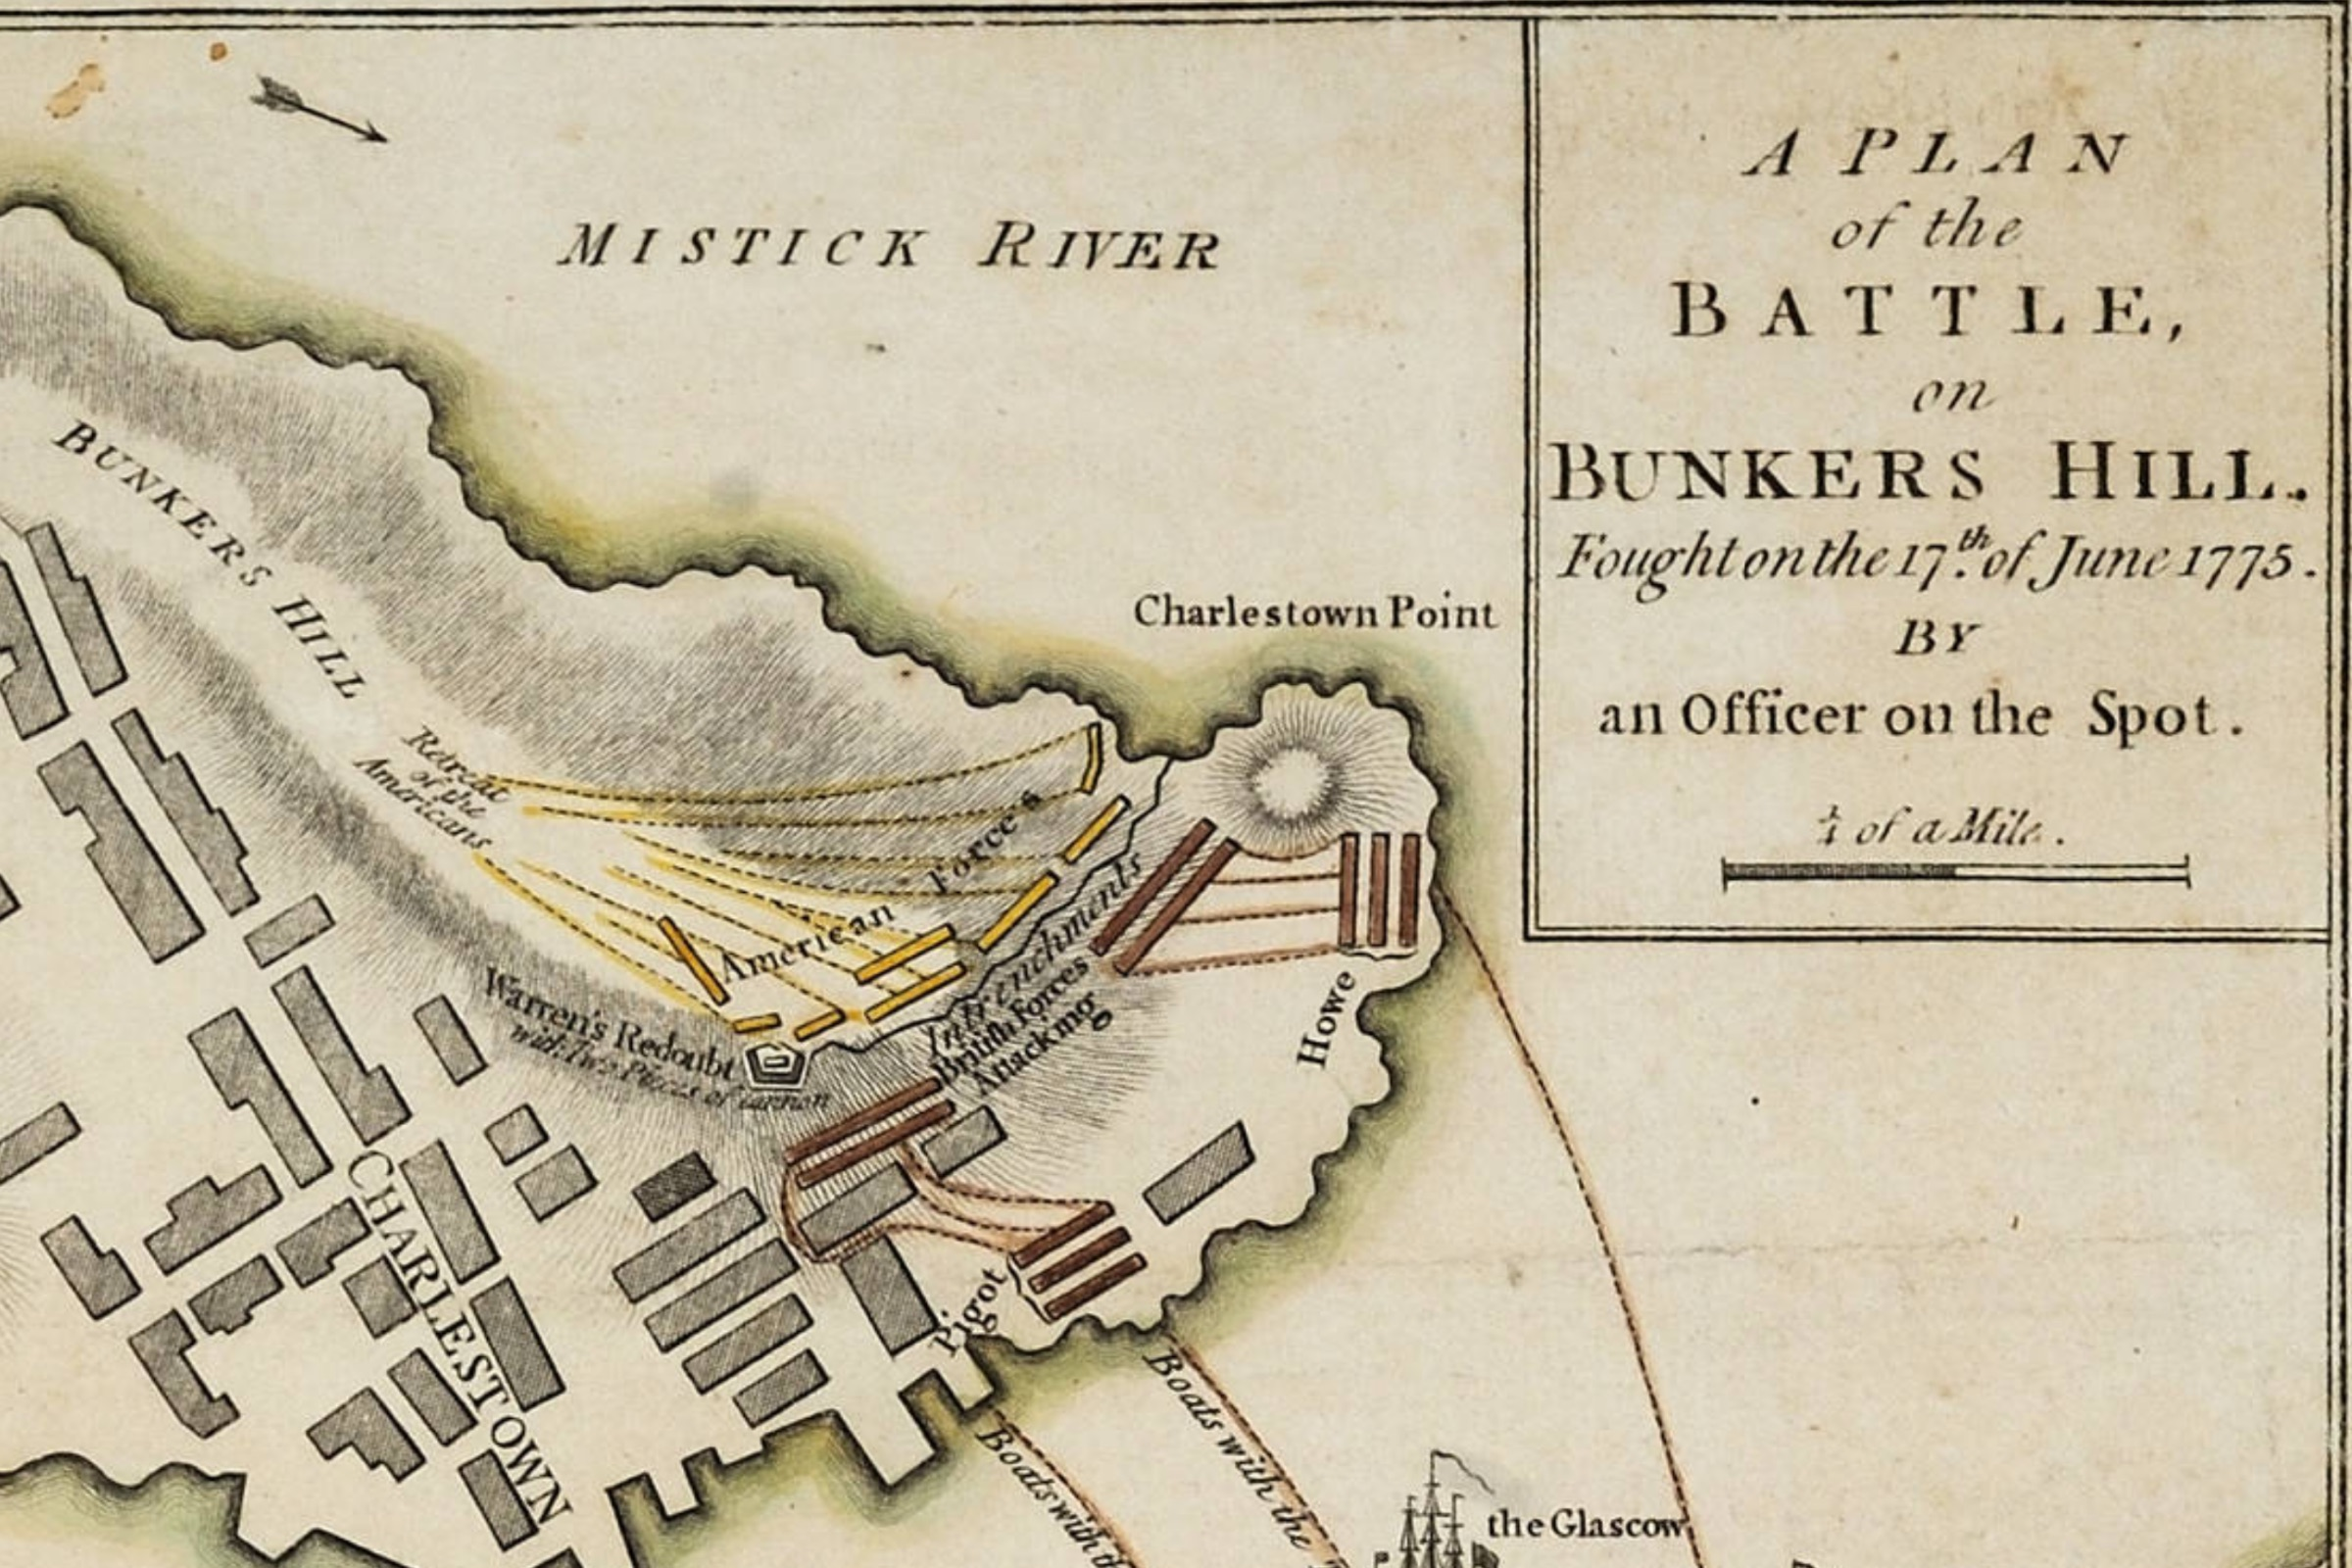 This London map of the Battle of Bunker Hill is one of ten great Revolutionary War maps.